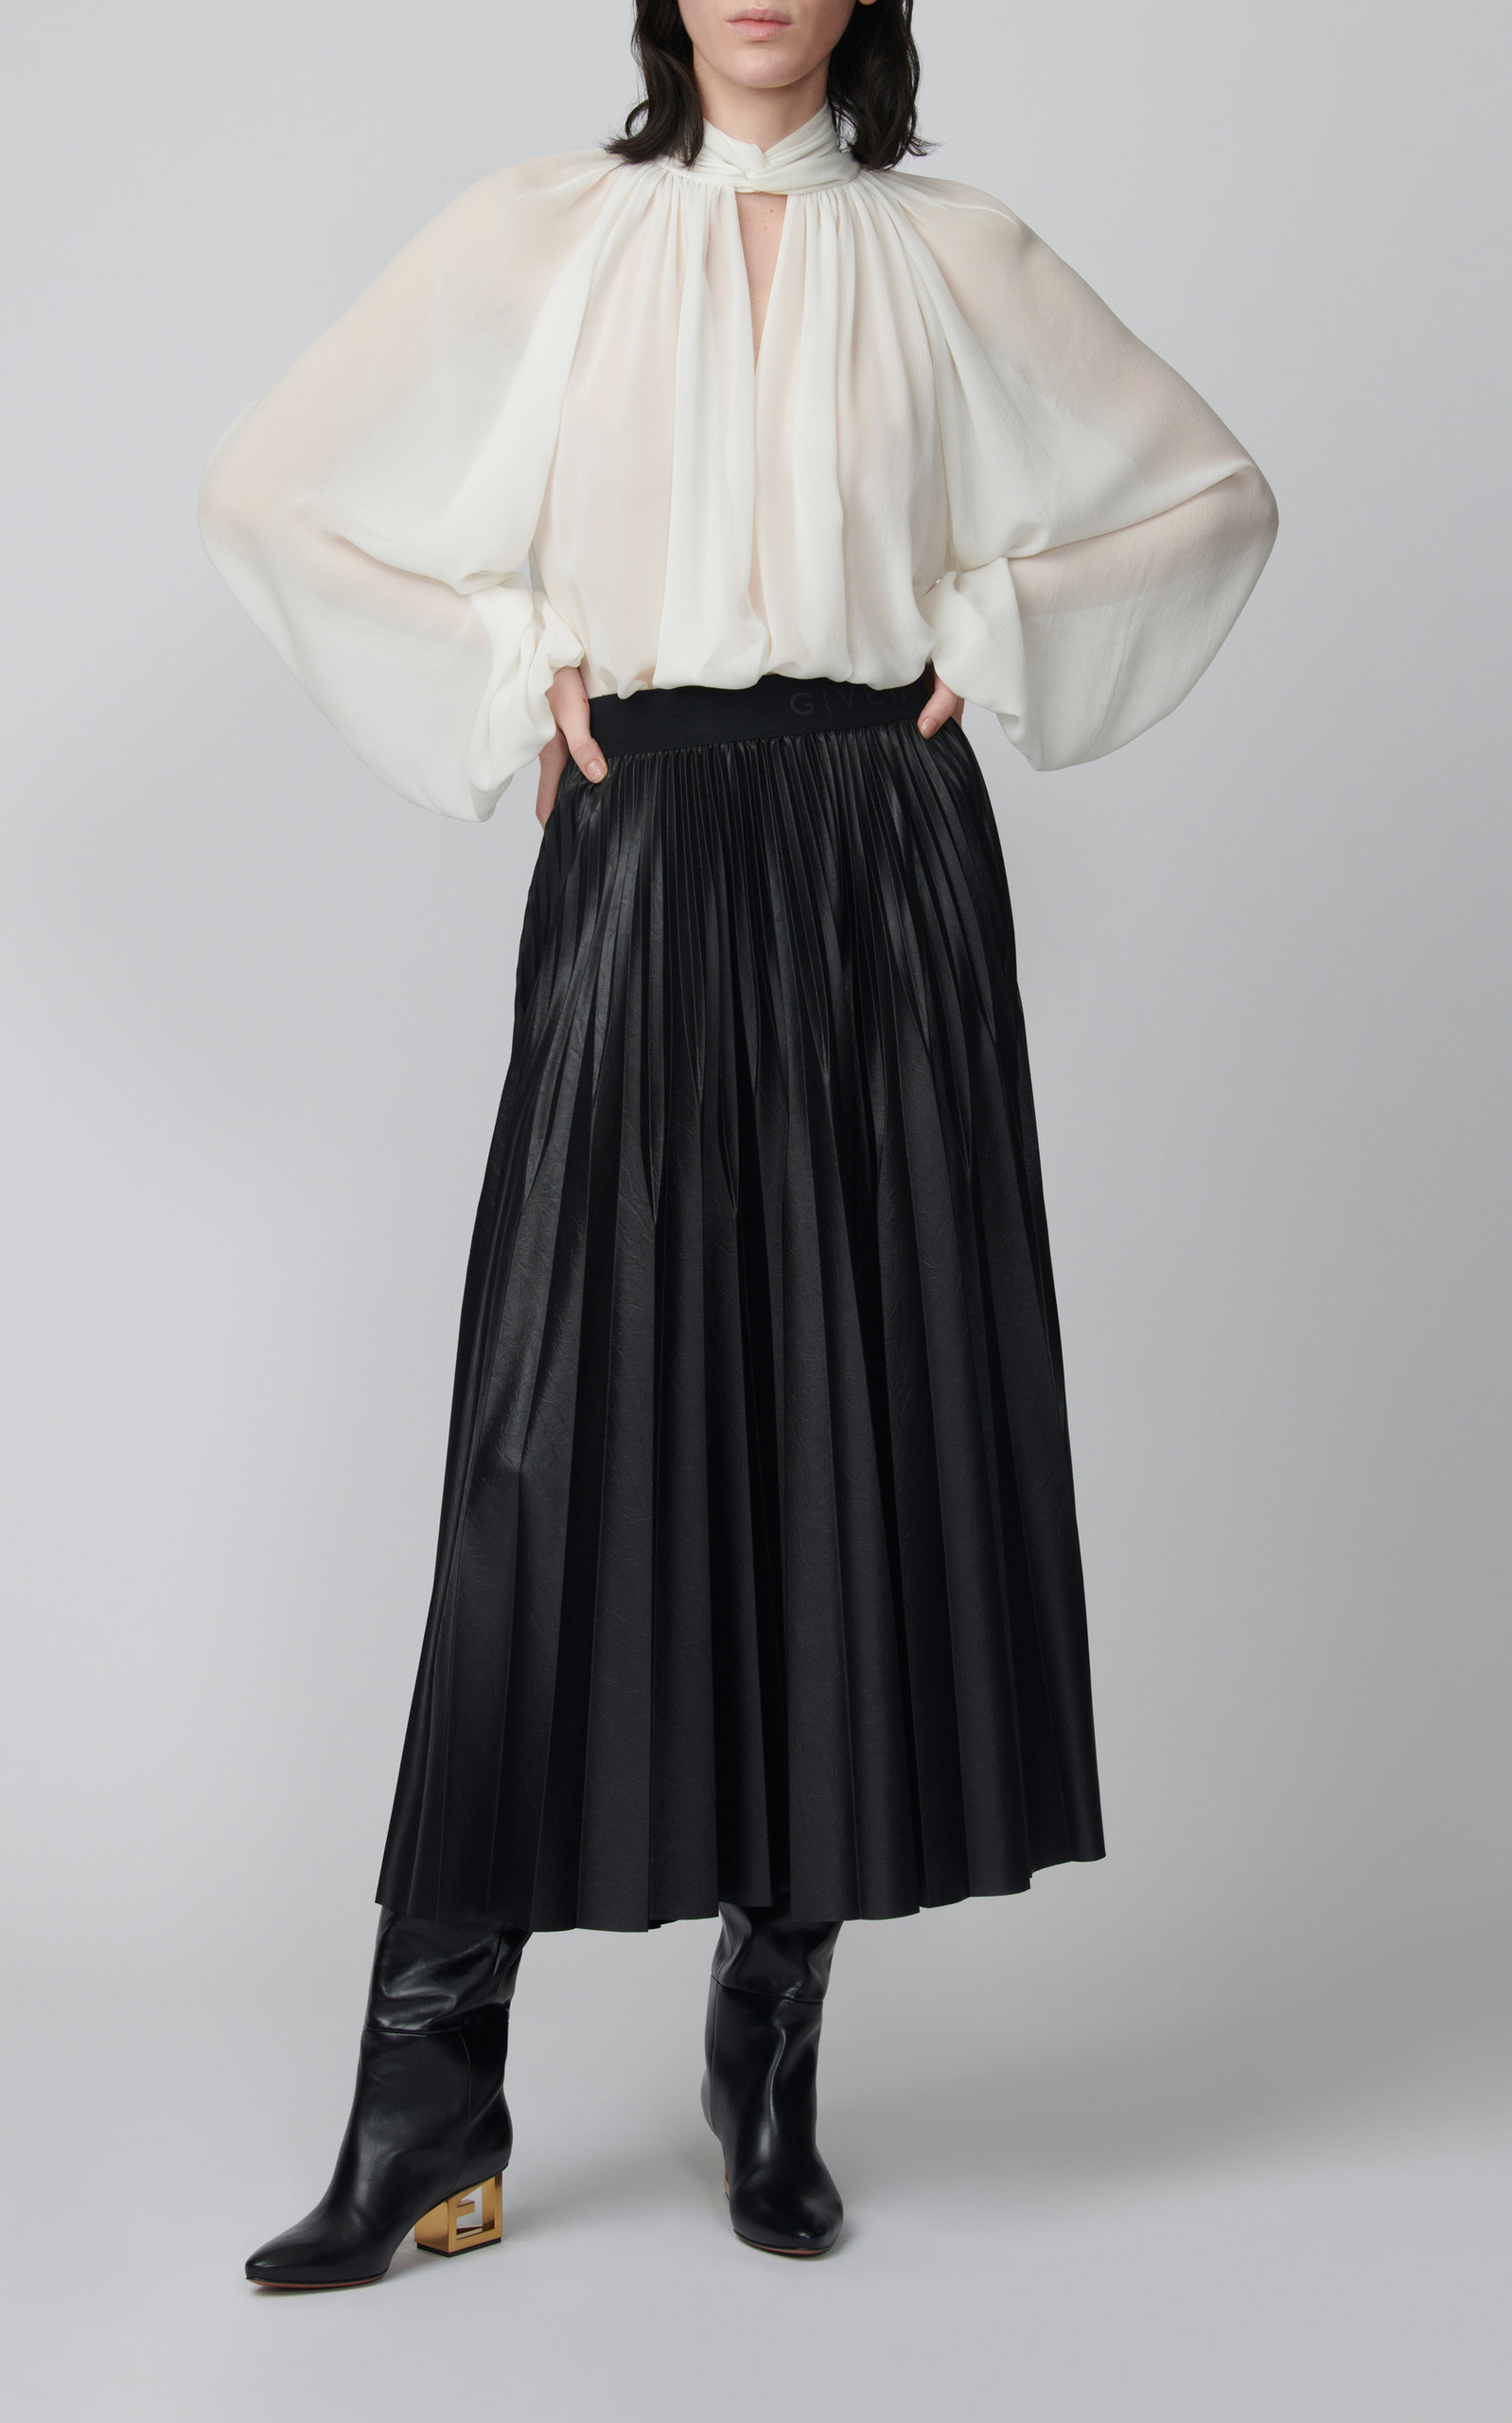 Givenchy pleated jersey midi skirt midi skirt outfit